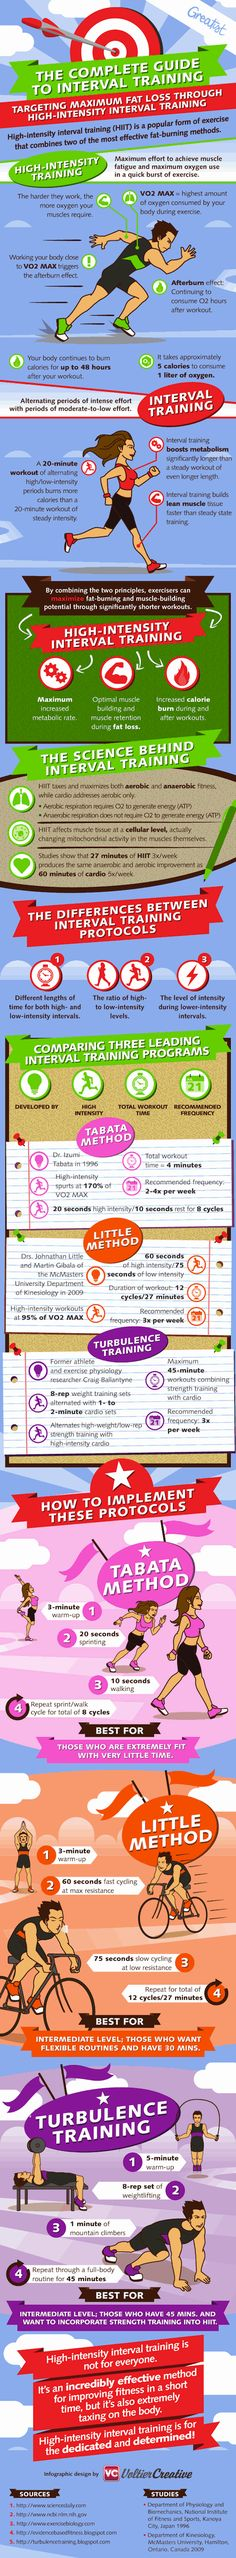 How To Do Interval Training